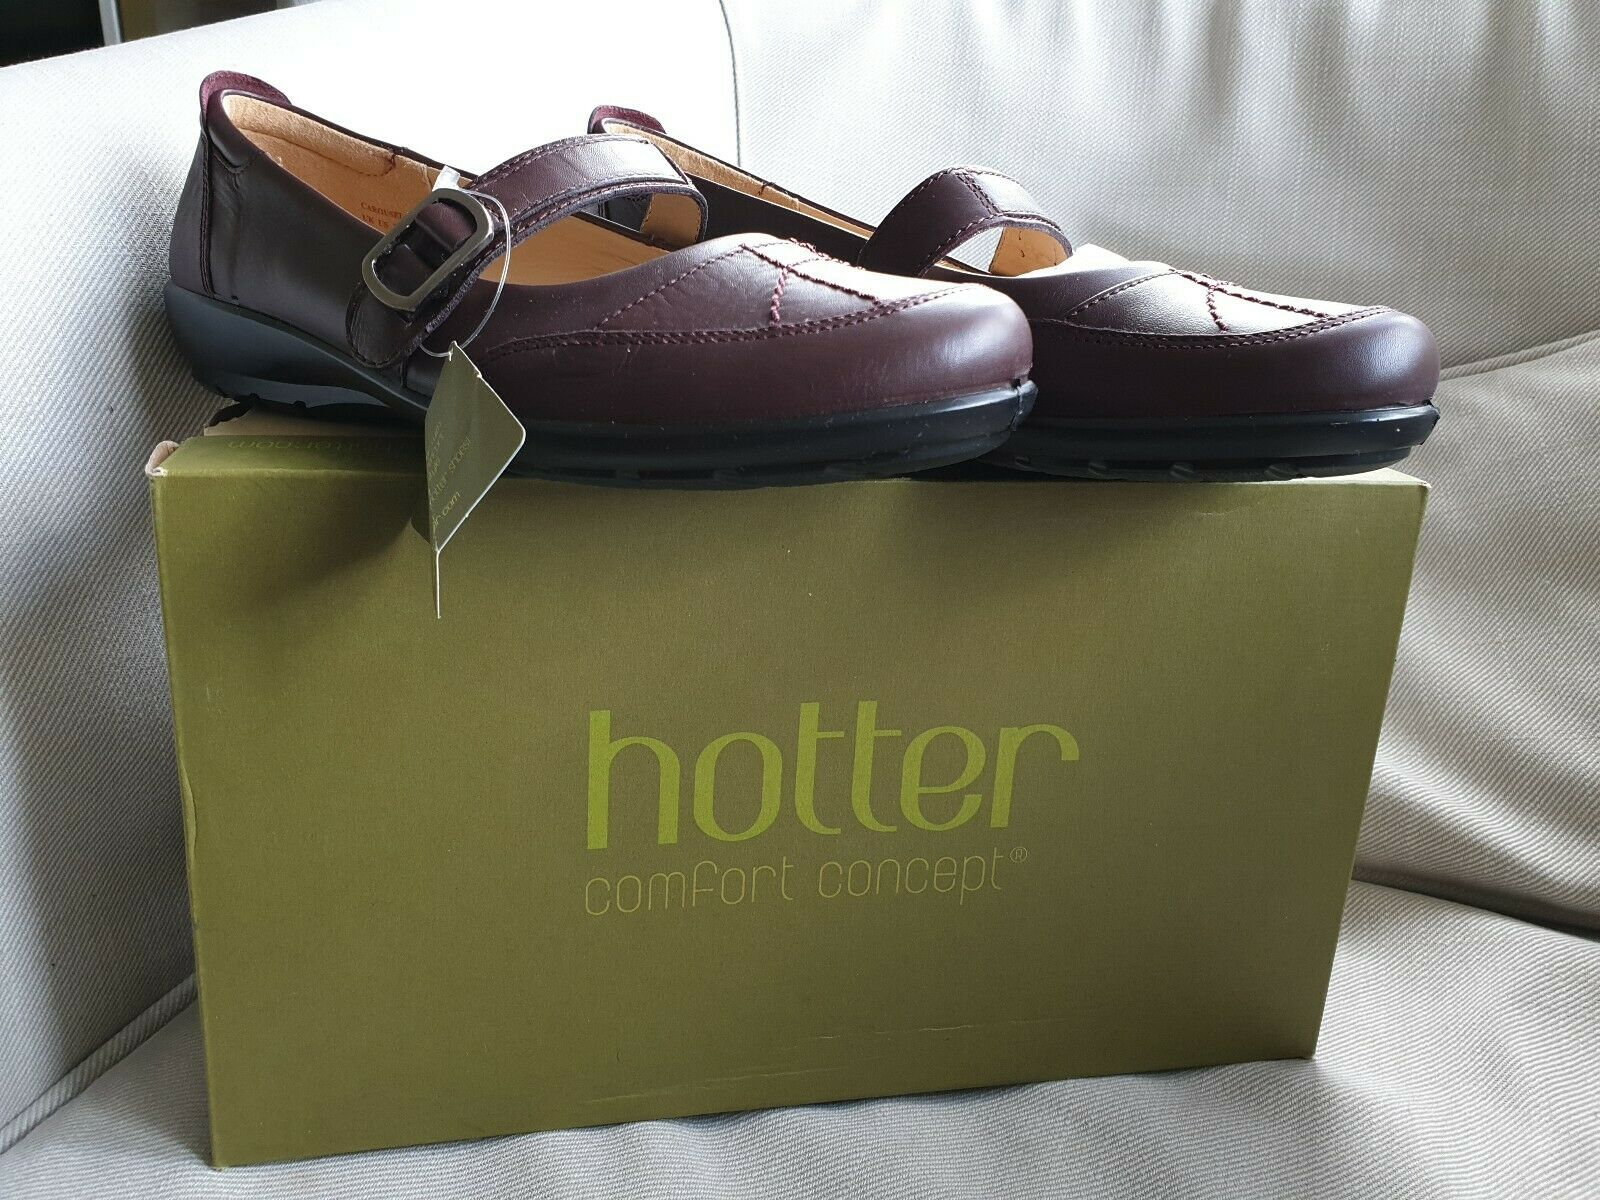 Hotter Carousel - Carou Womens Leather Loafers Brand New With Box Size UK 5.5